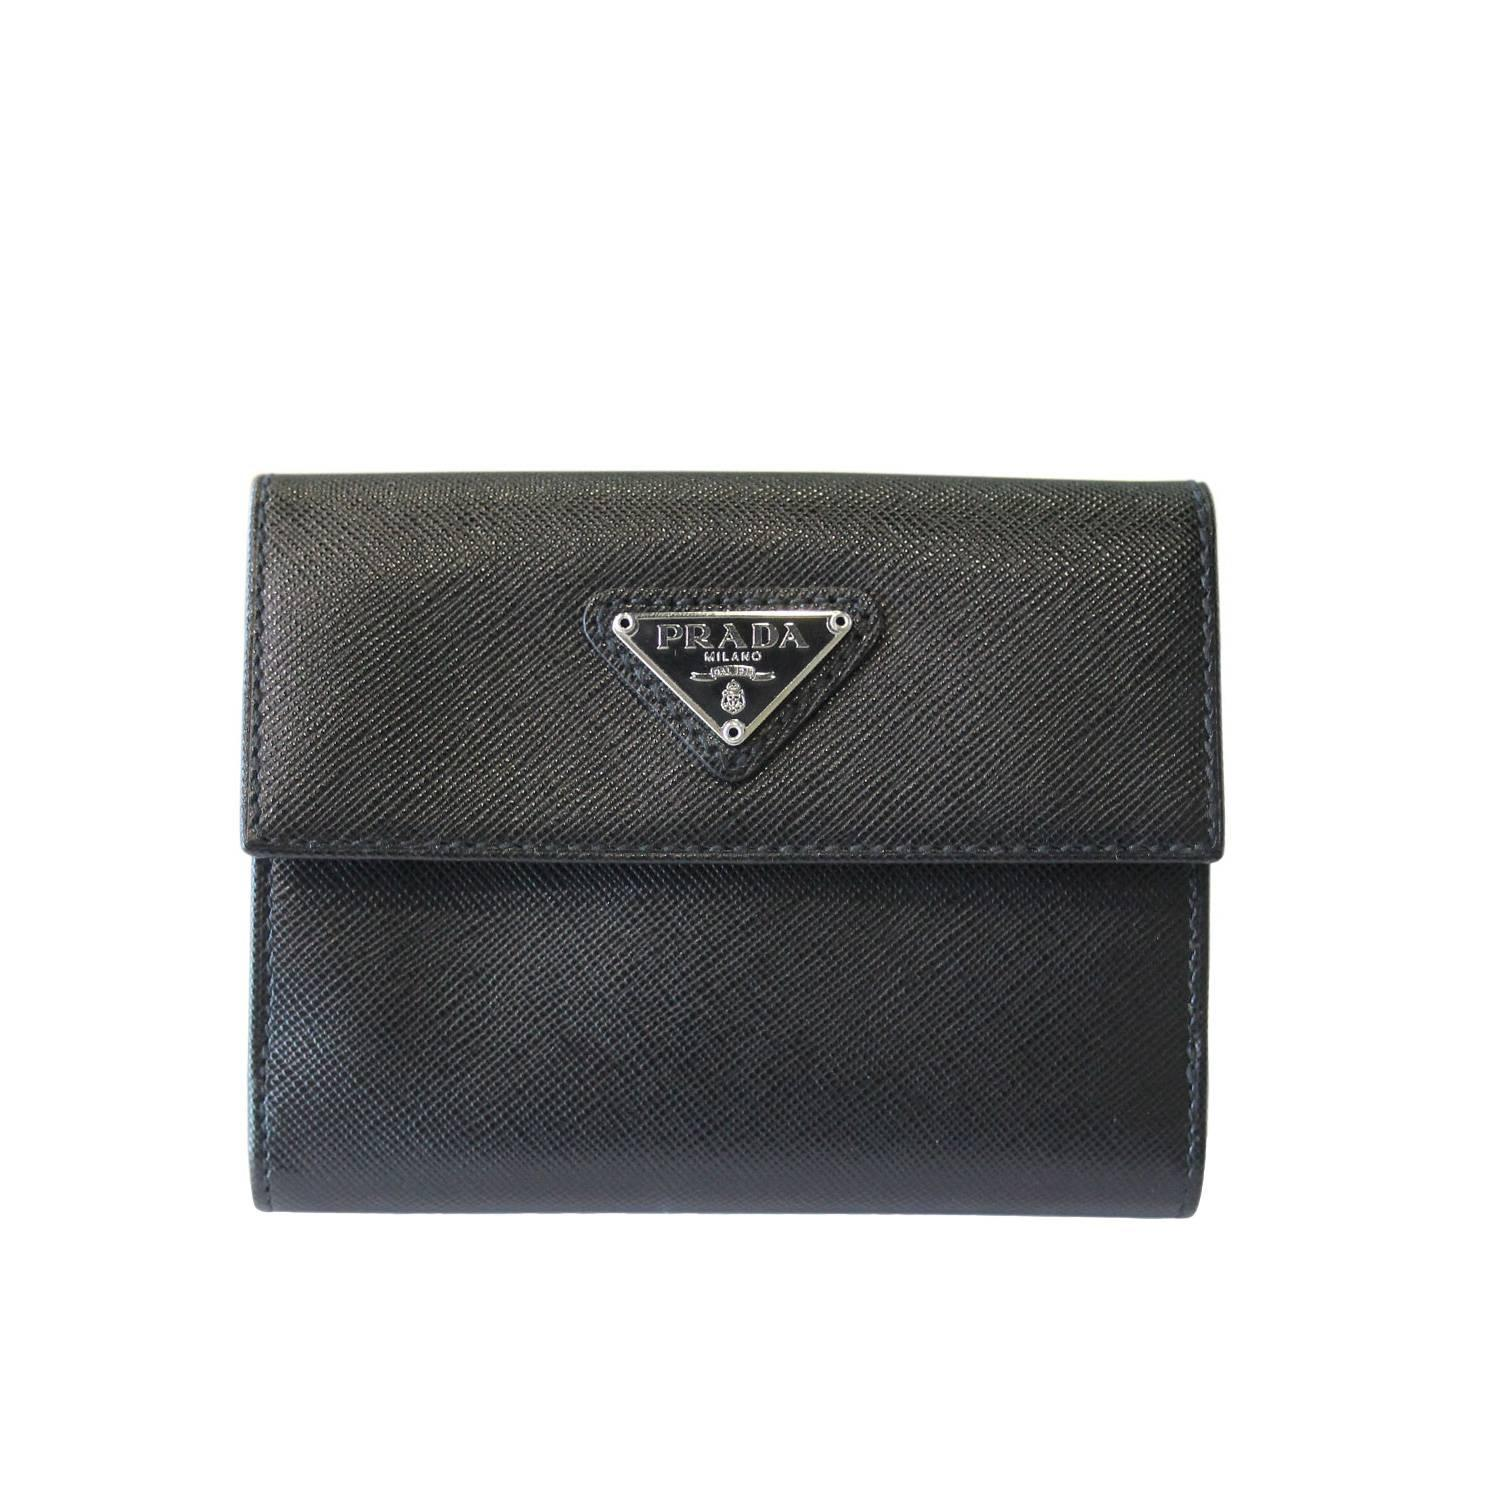 5935621507f8 ... spain prada black saffiano leather bi fold wallet in box at 1stdibs  24e5e c5900